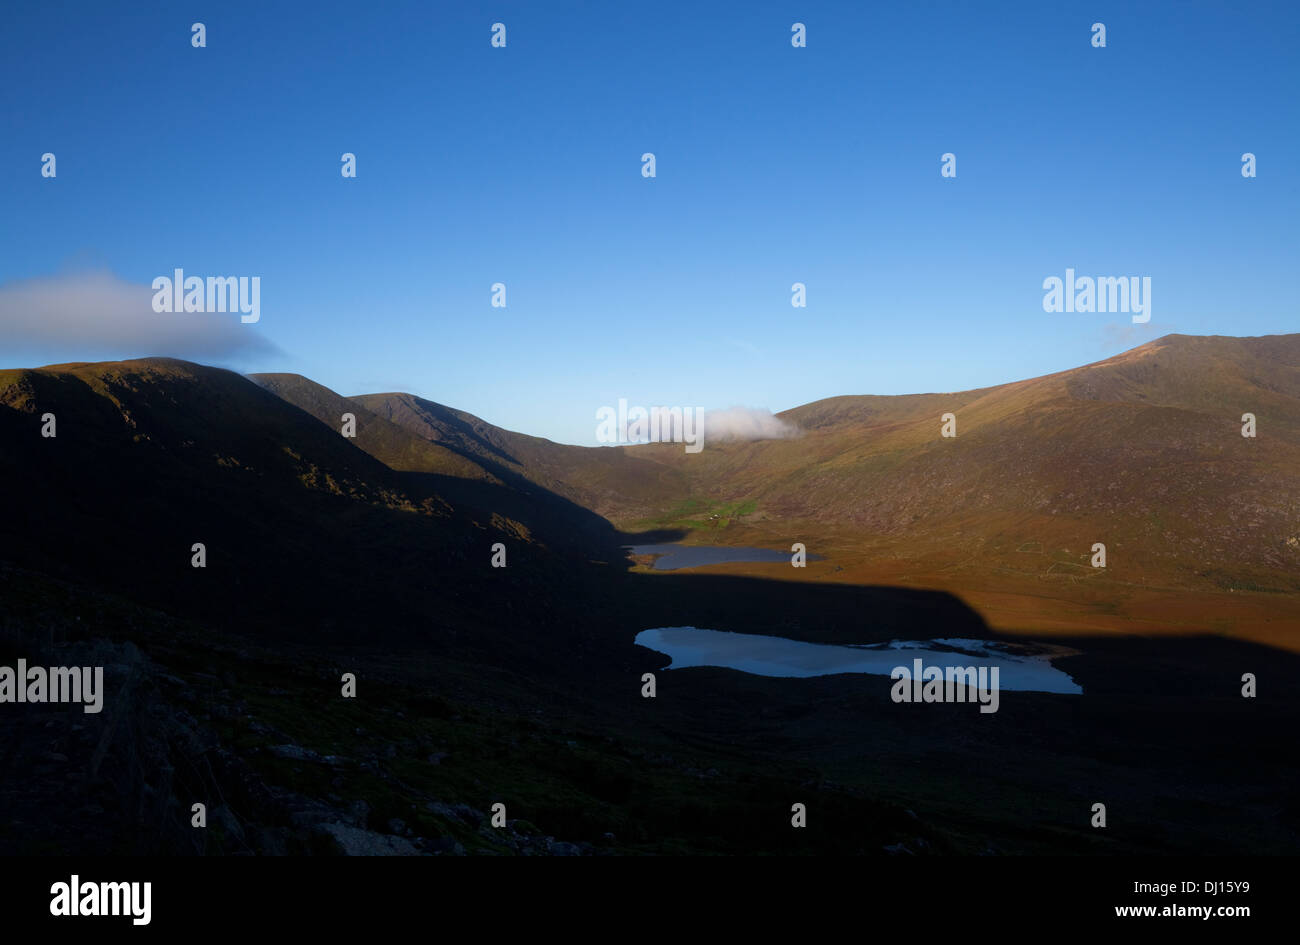 Lakes below the Conor Pass with Brandon Mountain, Dingle Peninsula, County Kerry, Ireland - Stock Image